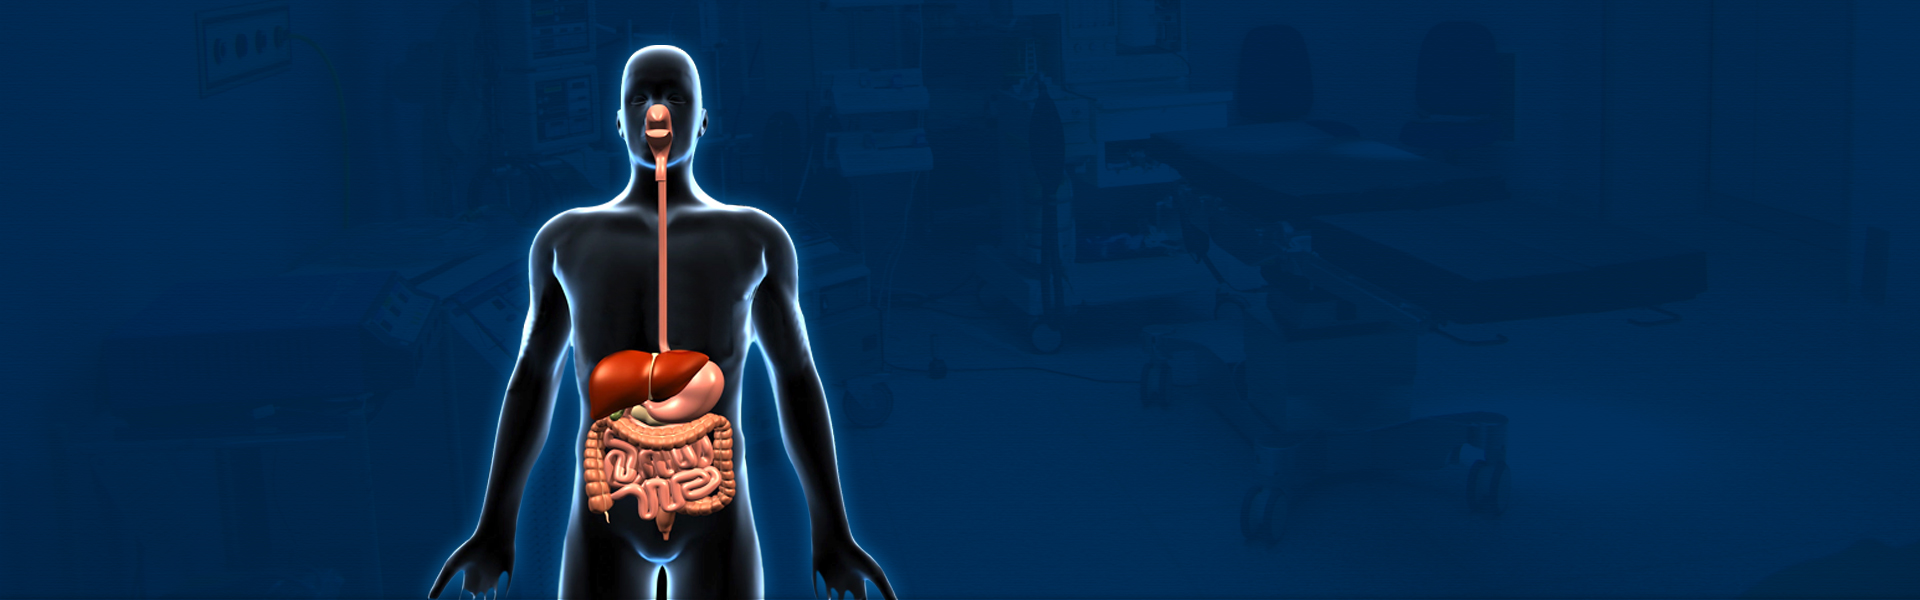 Banner on Gastrointestinal System Disorders